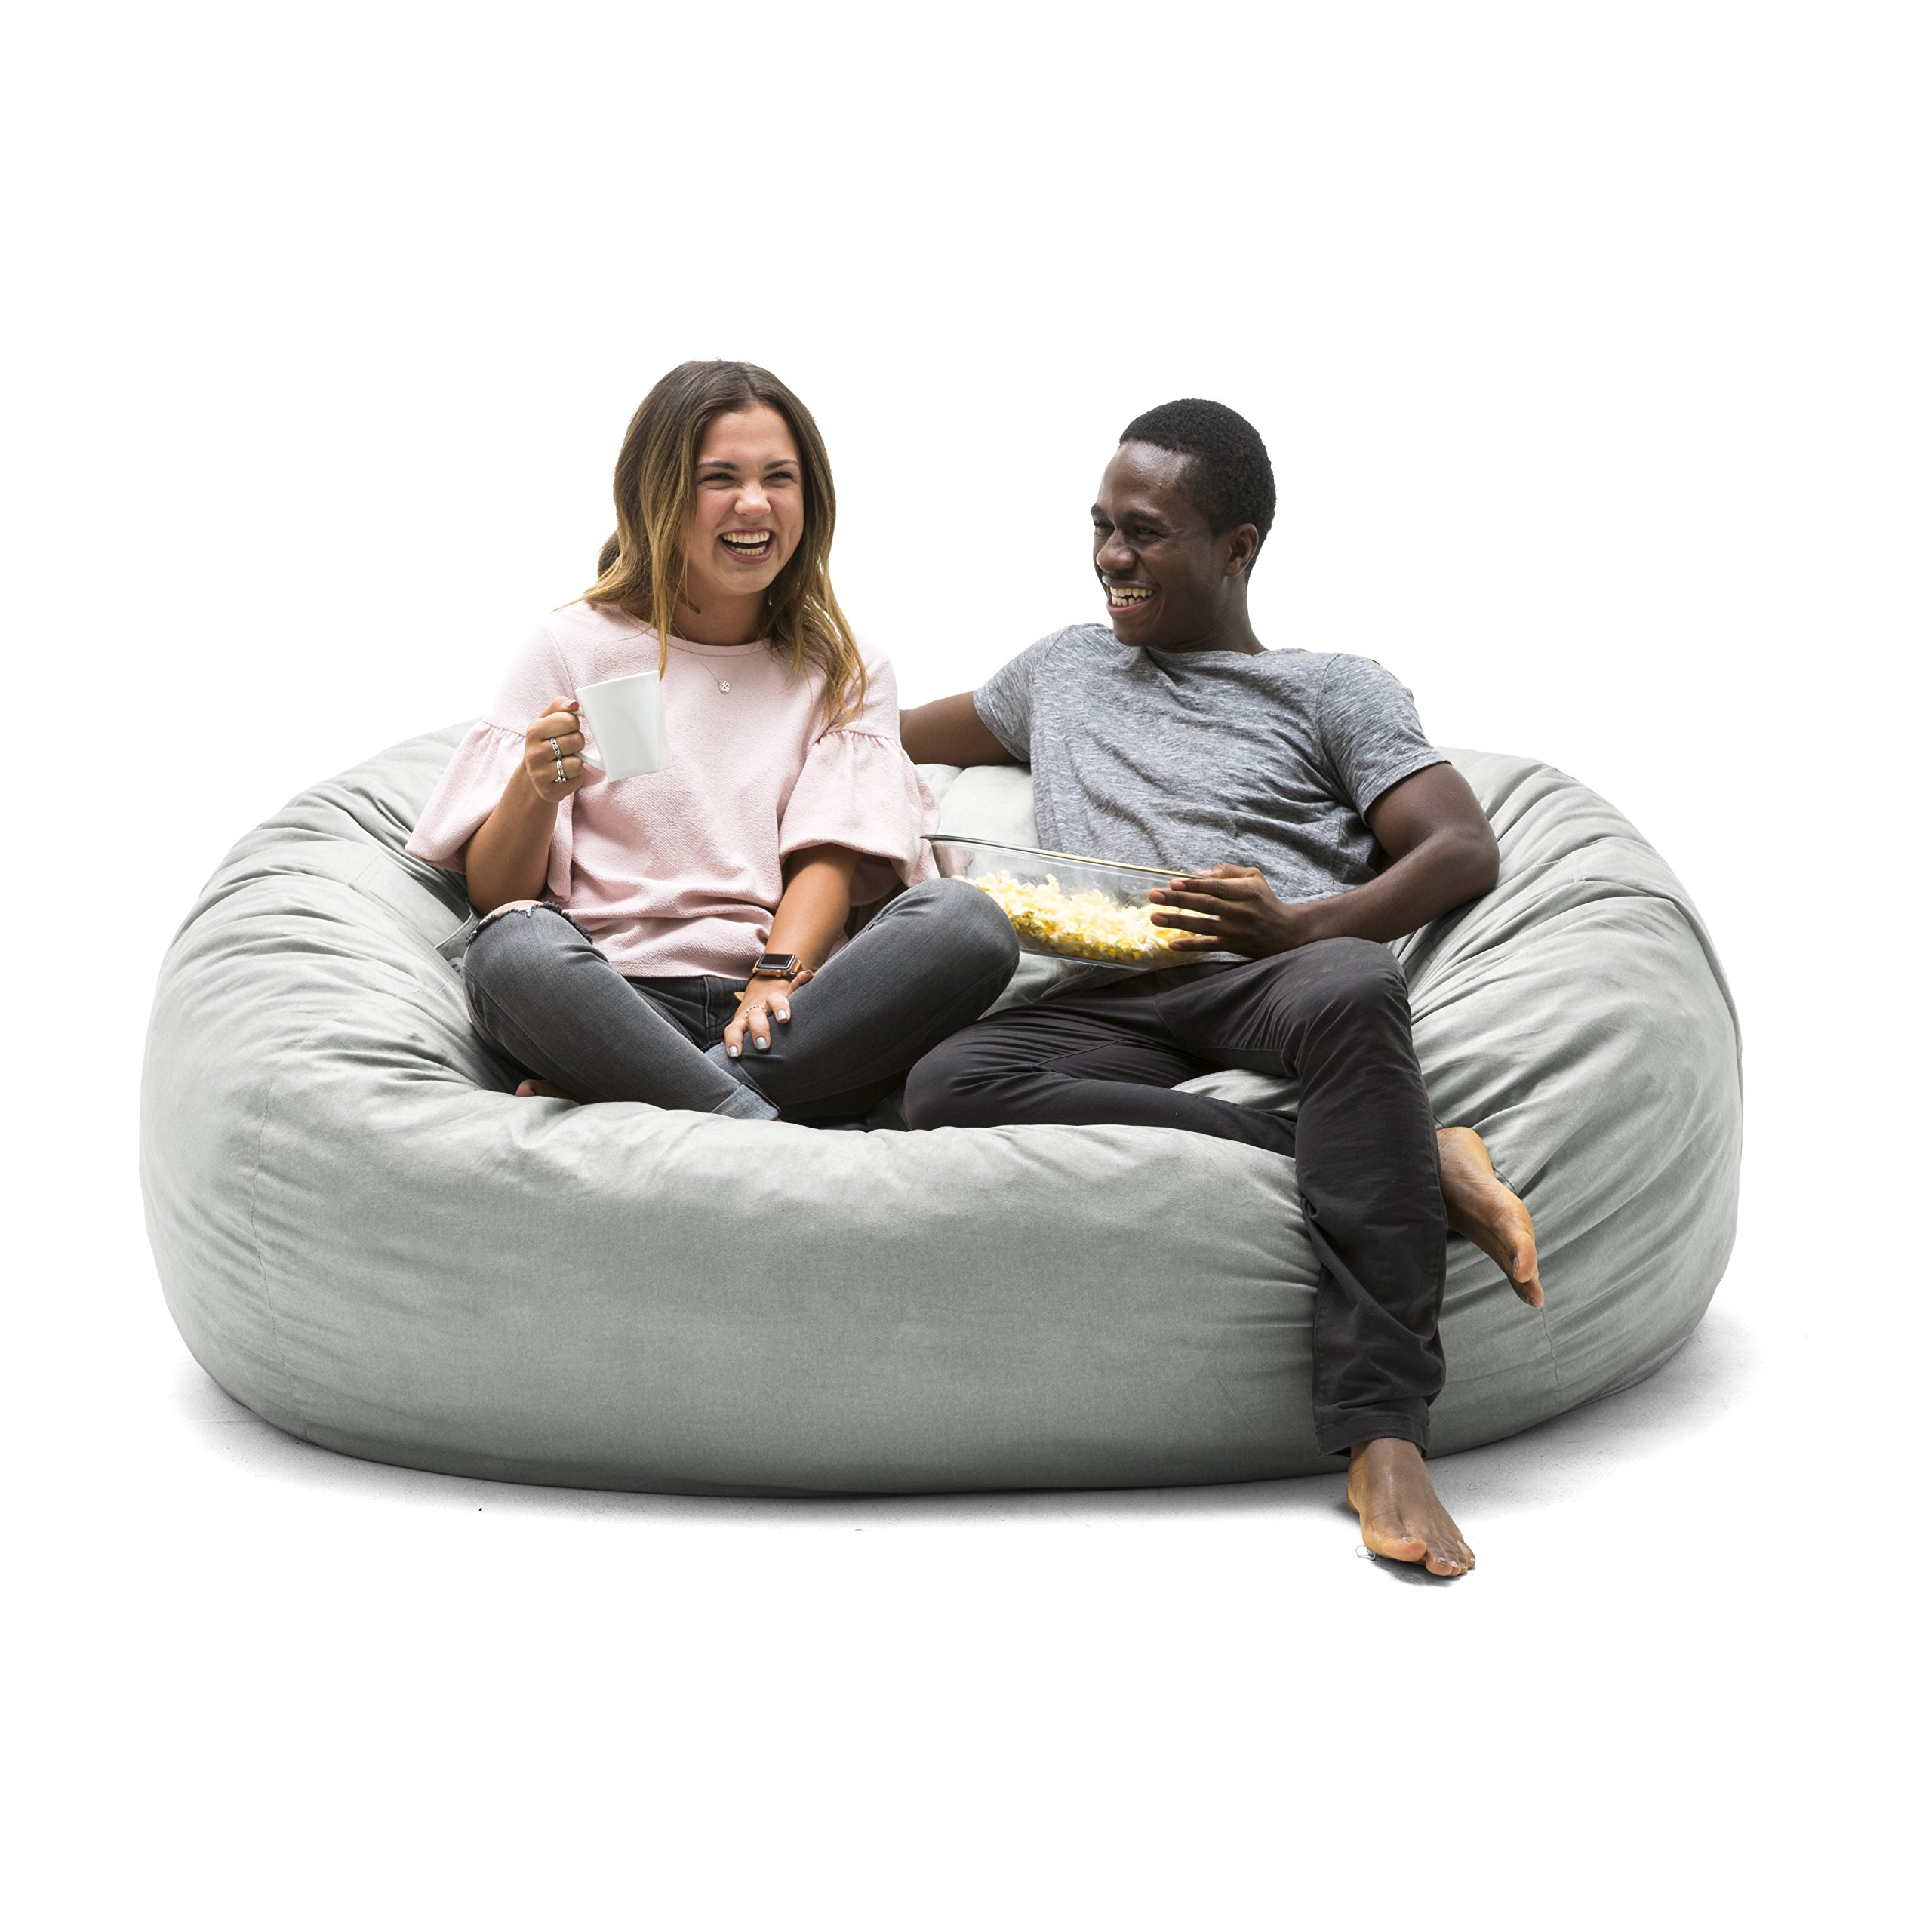 Phenomenal Details About Love Sac Adult Kids Bean Bag Chair Fuf Huge Extra Large Media Lounger Foam Cozy Unemploymentrelief Wooden Chair Designs For Living Room Unemploymentrelieforg